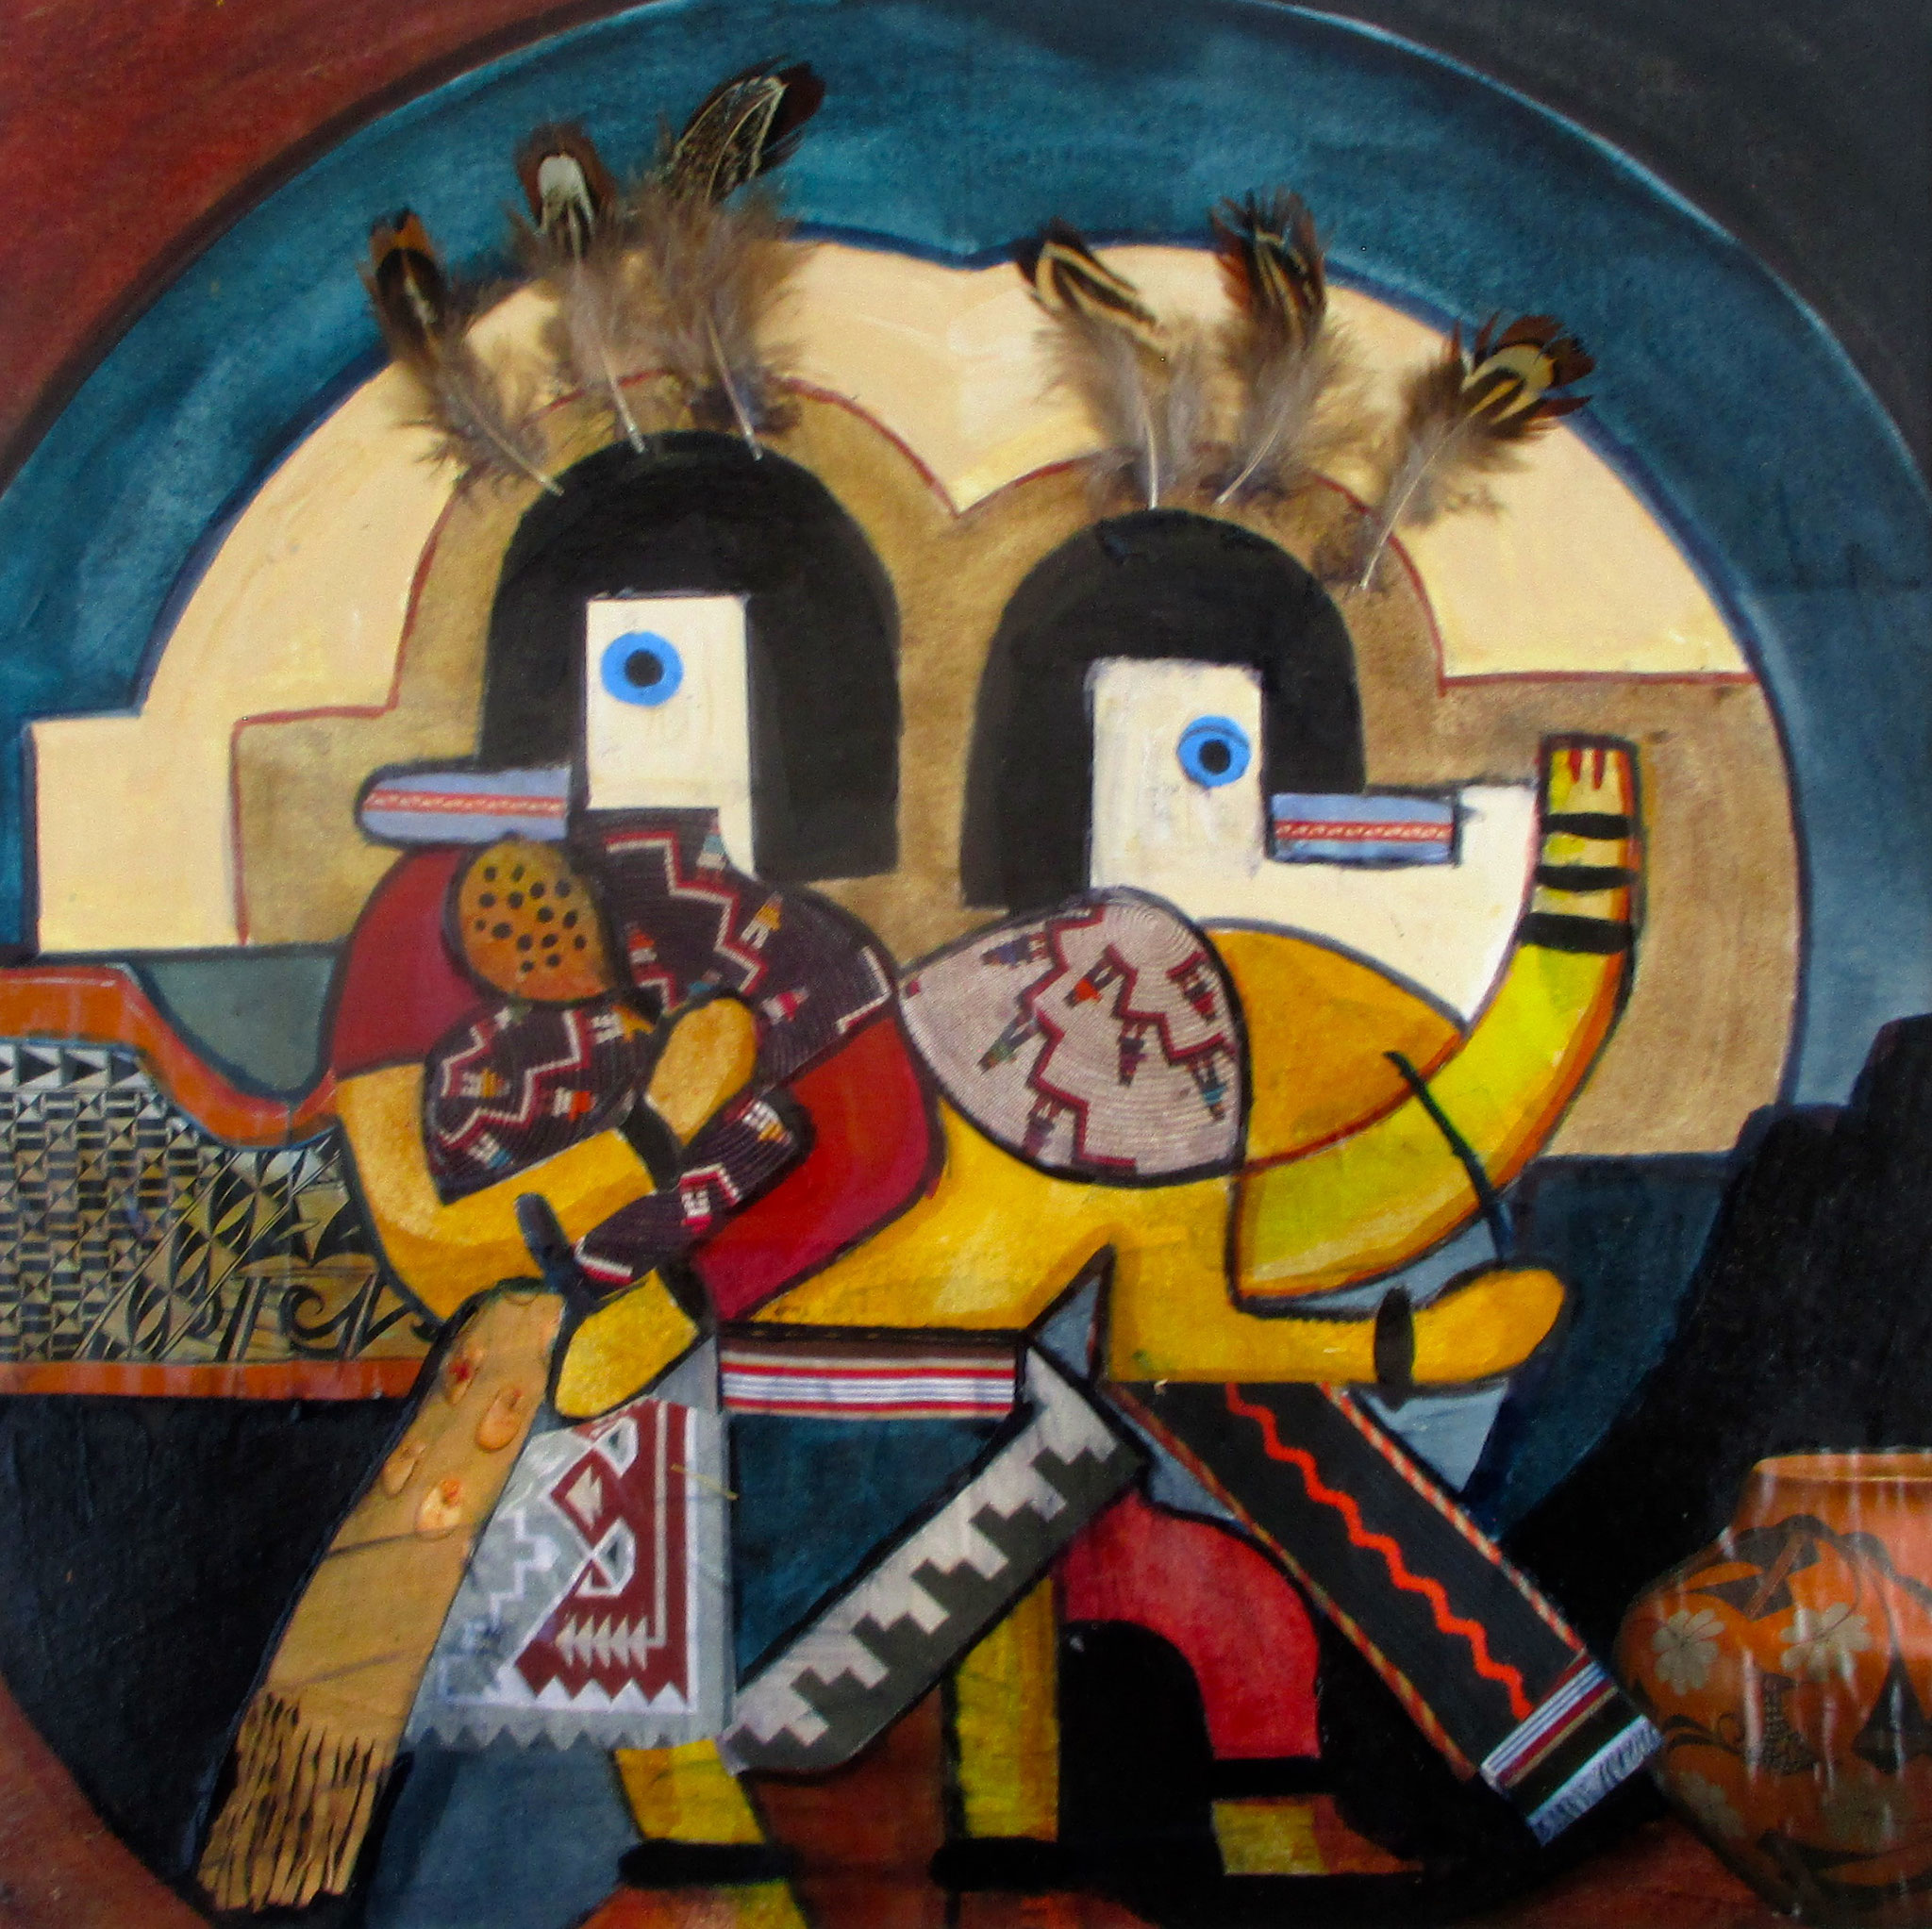 San Geronimo Runners, acrylic, collage on paper, 16 x 16 SOLD